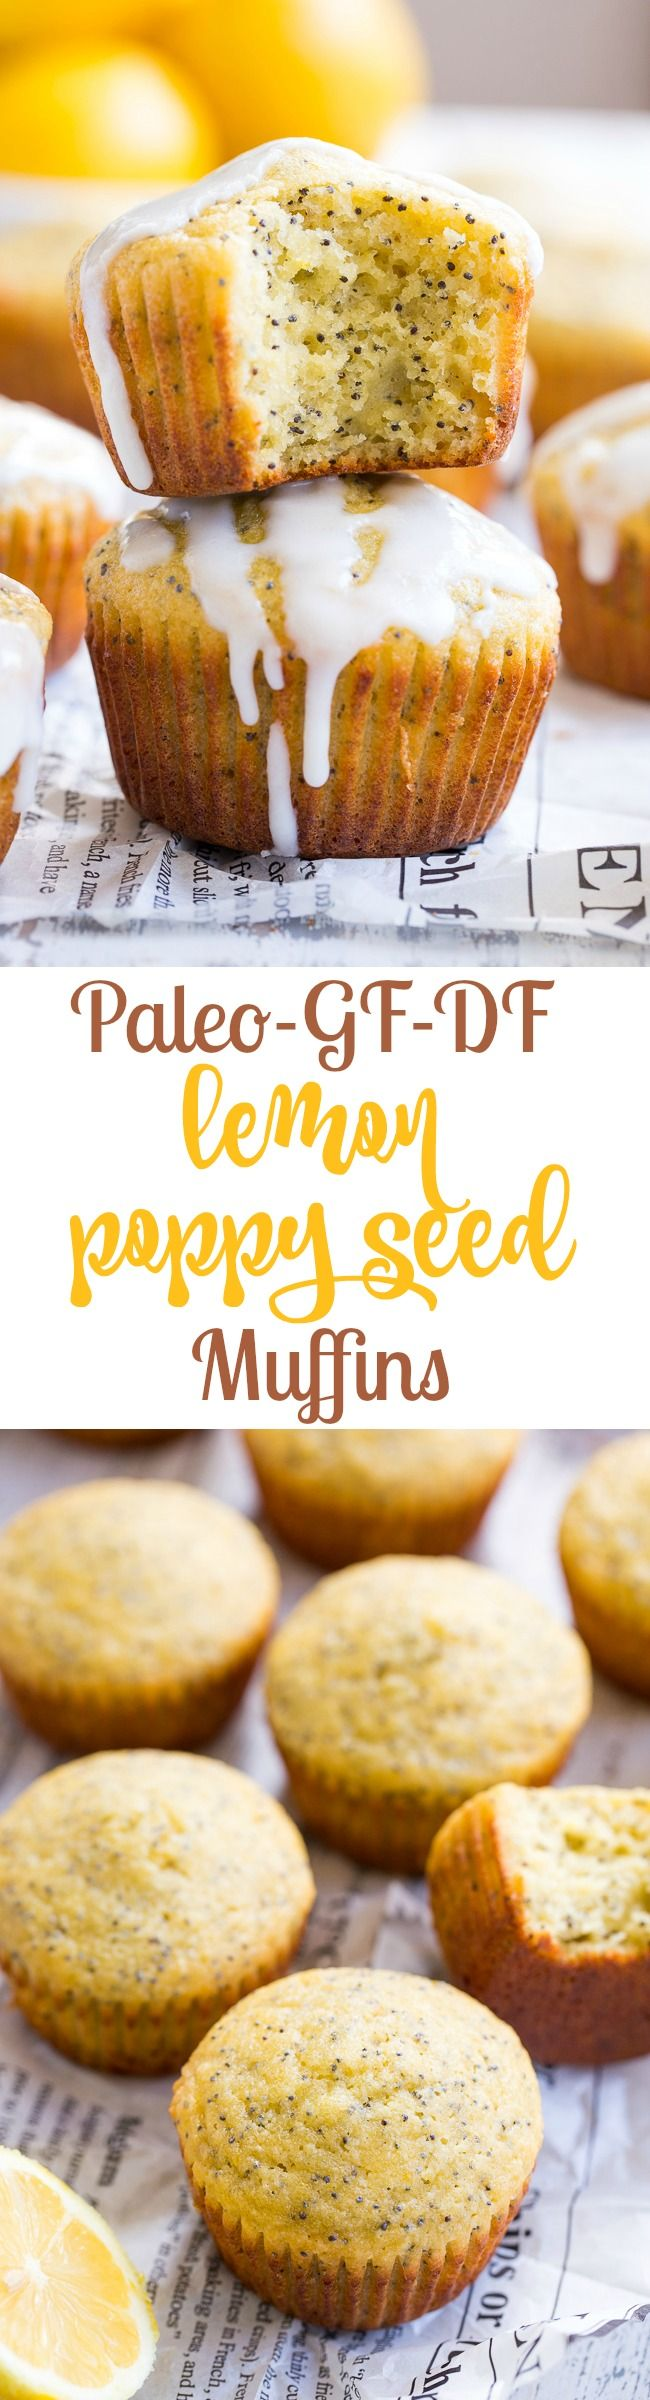 These Lemon Poppy Seed Muffins are tender, moist and full of sweet citrus flavor.  Drizzle them with a coconut glaze for a fun and tasty brunch treat or afternoon snack.  They're fast, easy, grain free, dairy free, paleo, and family approved!